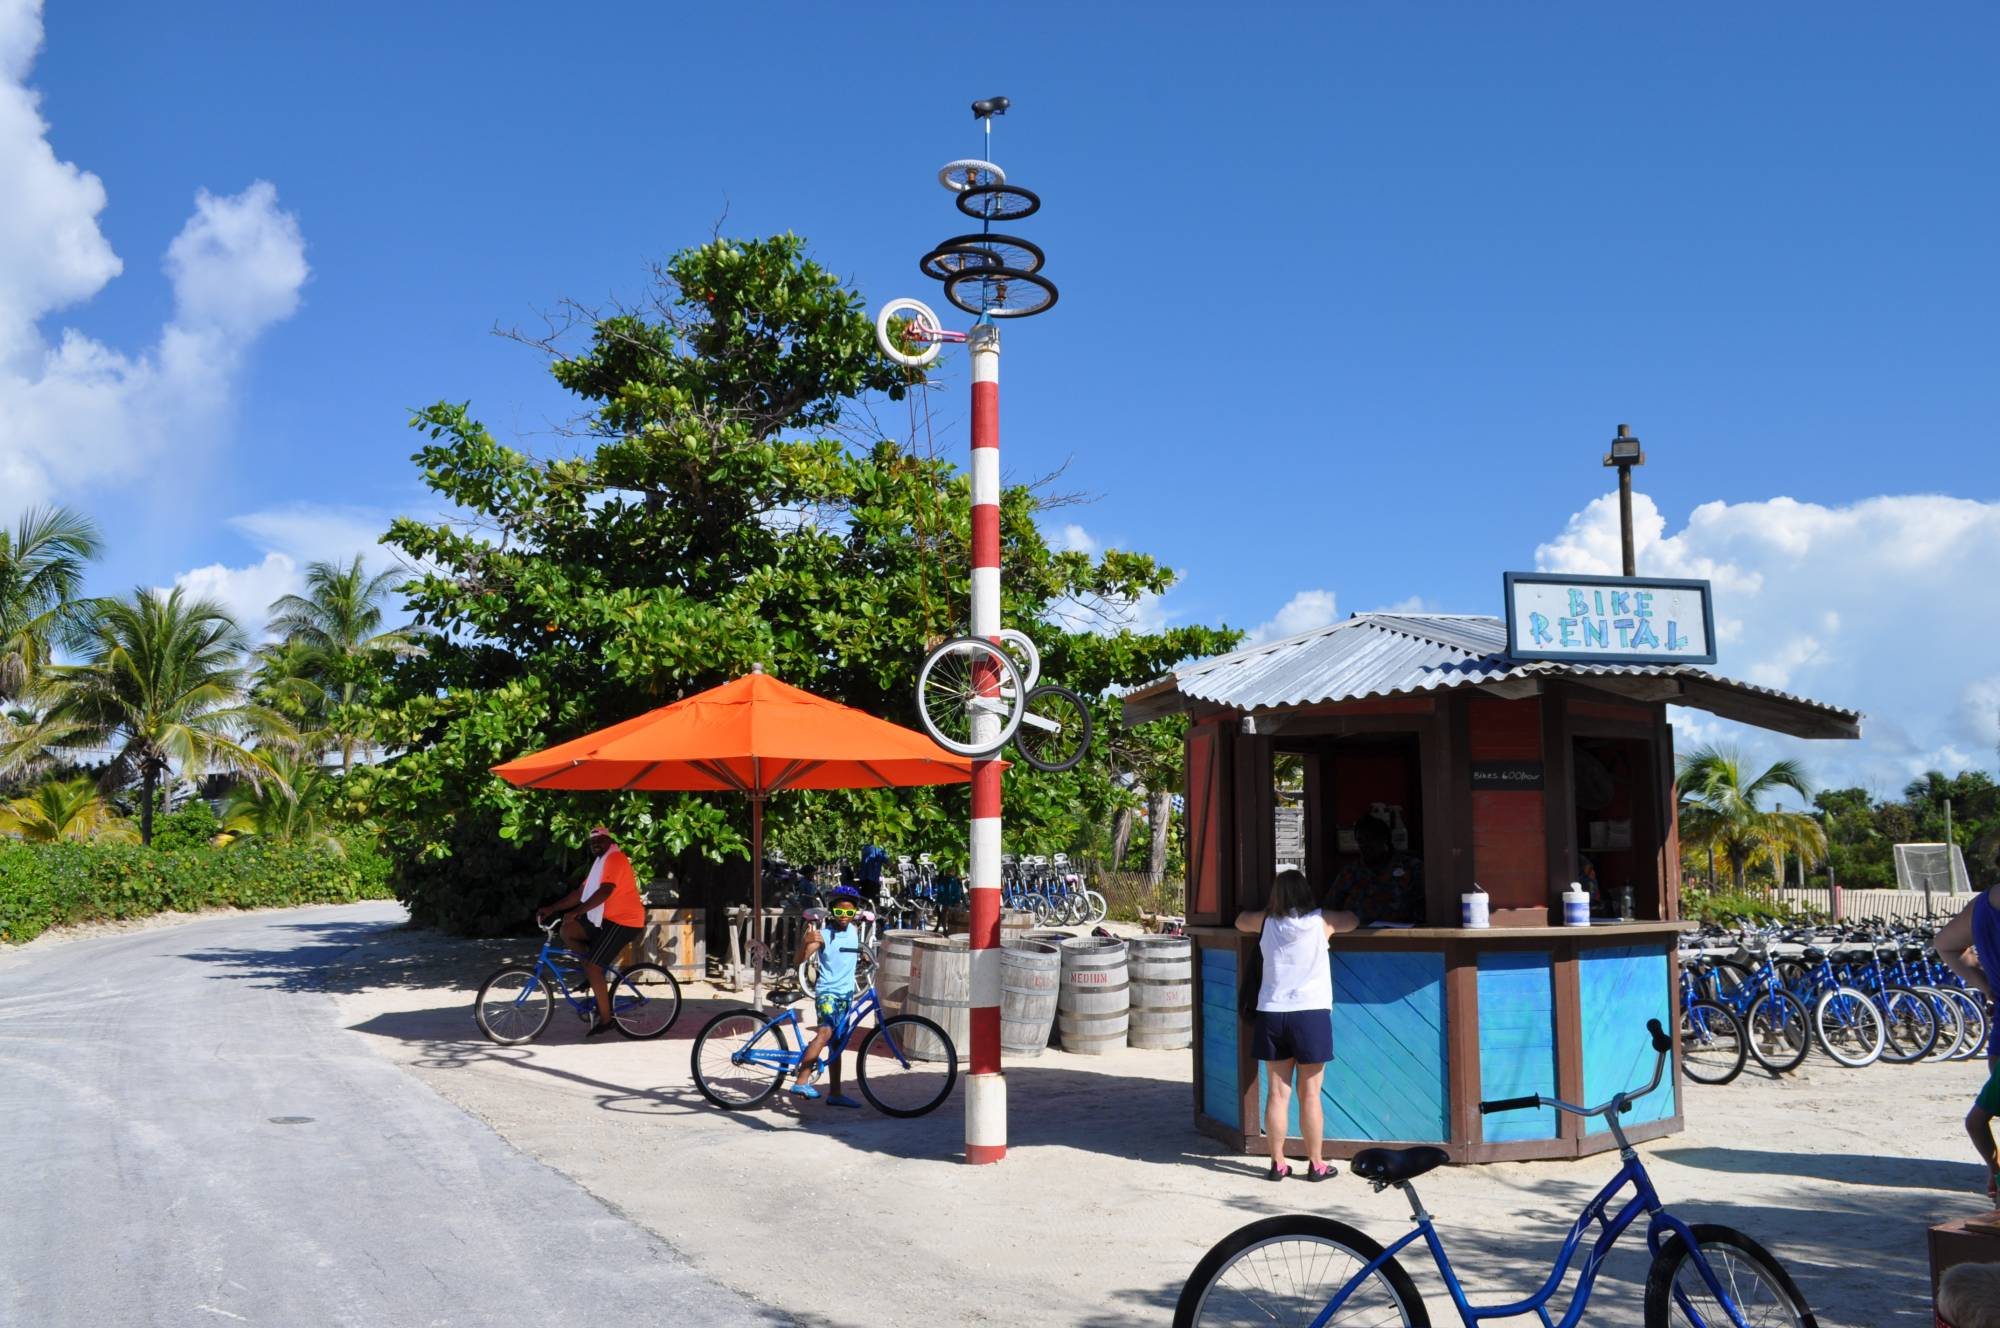 Explore Castaway Cay by bike |PassPorter.com